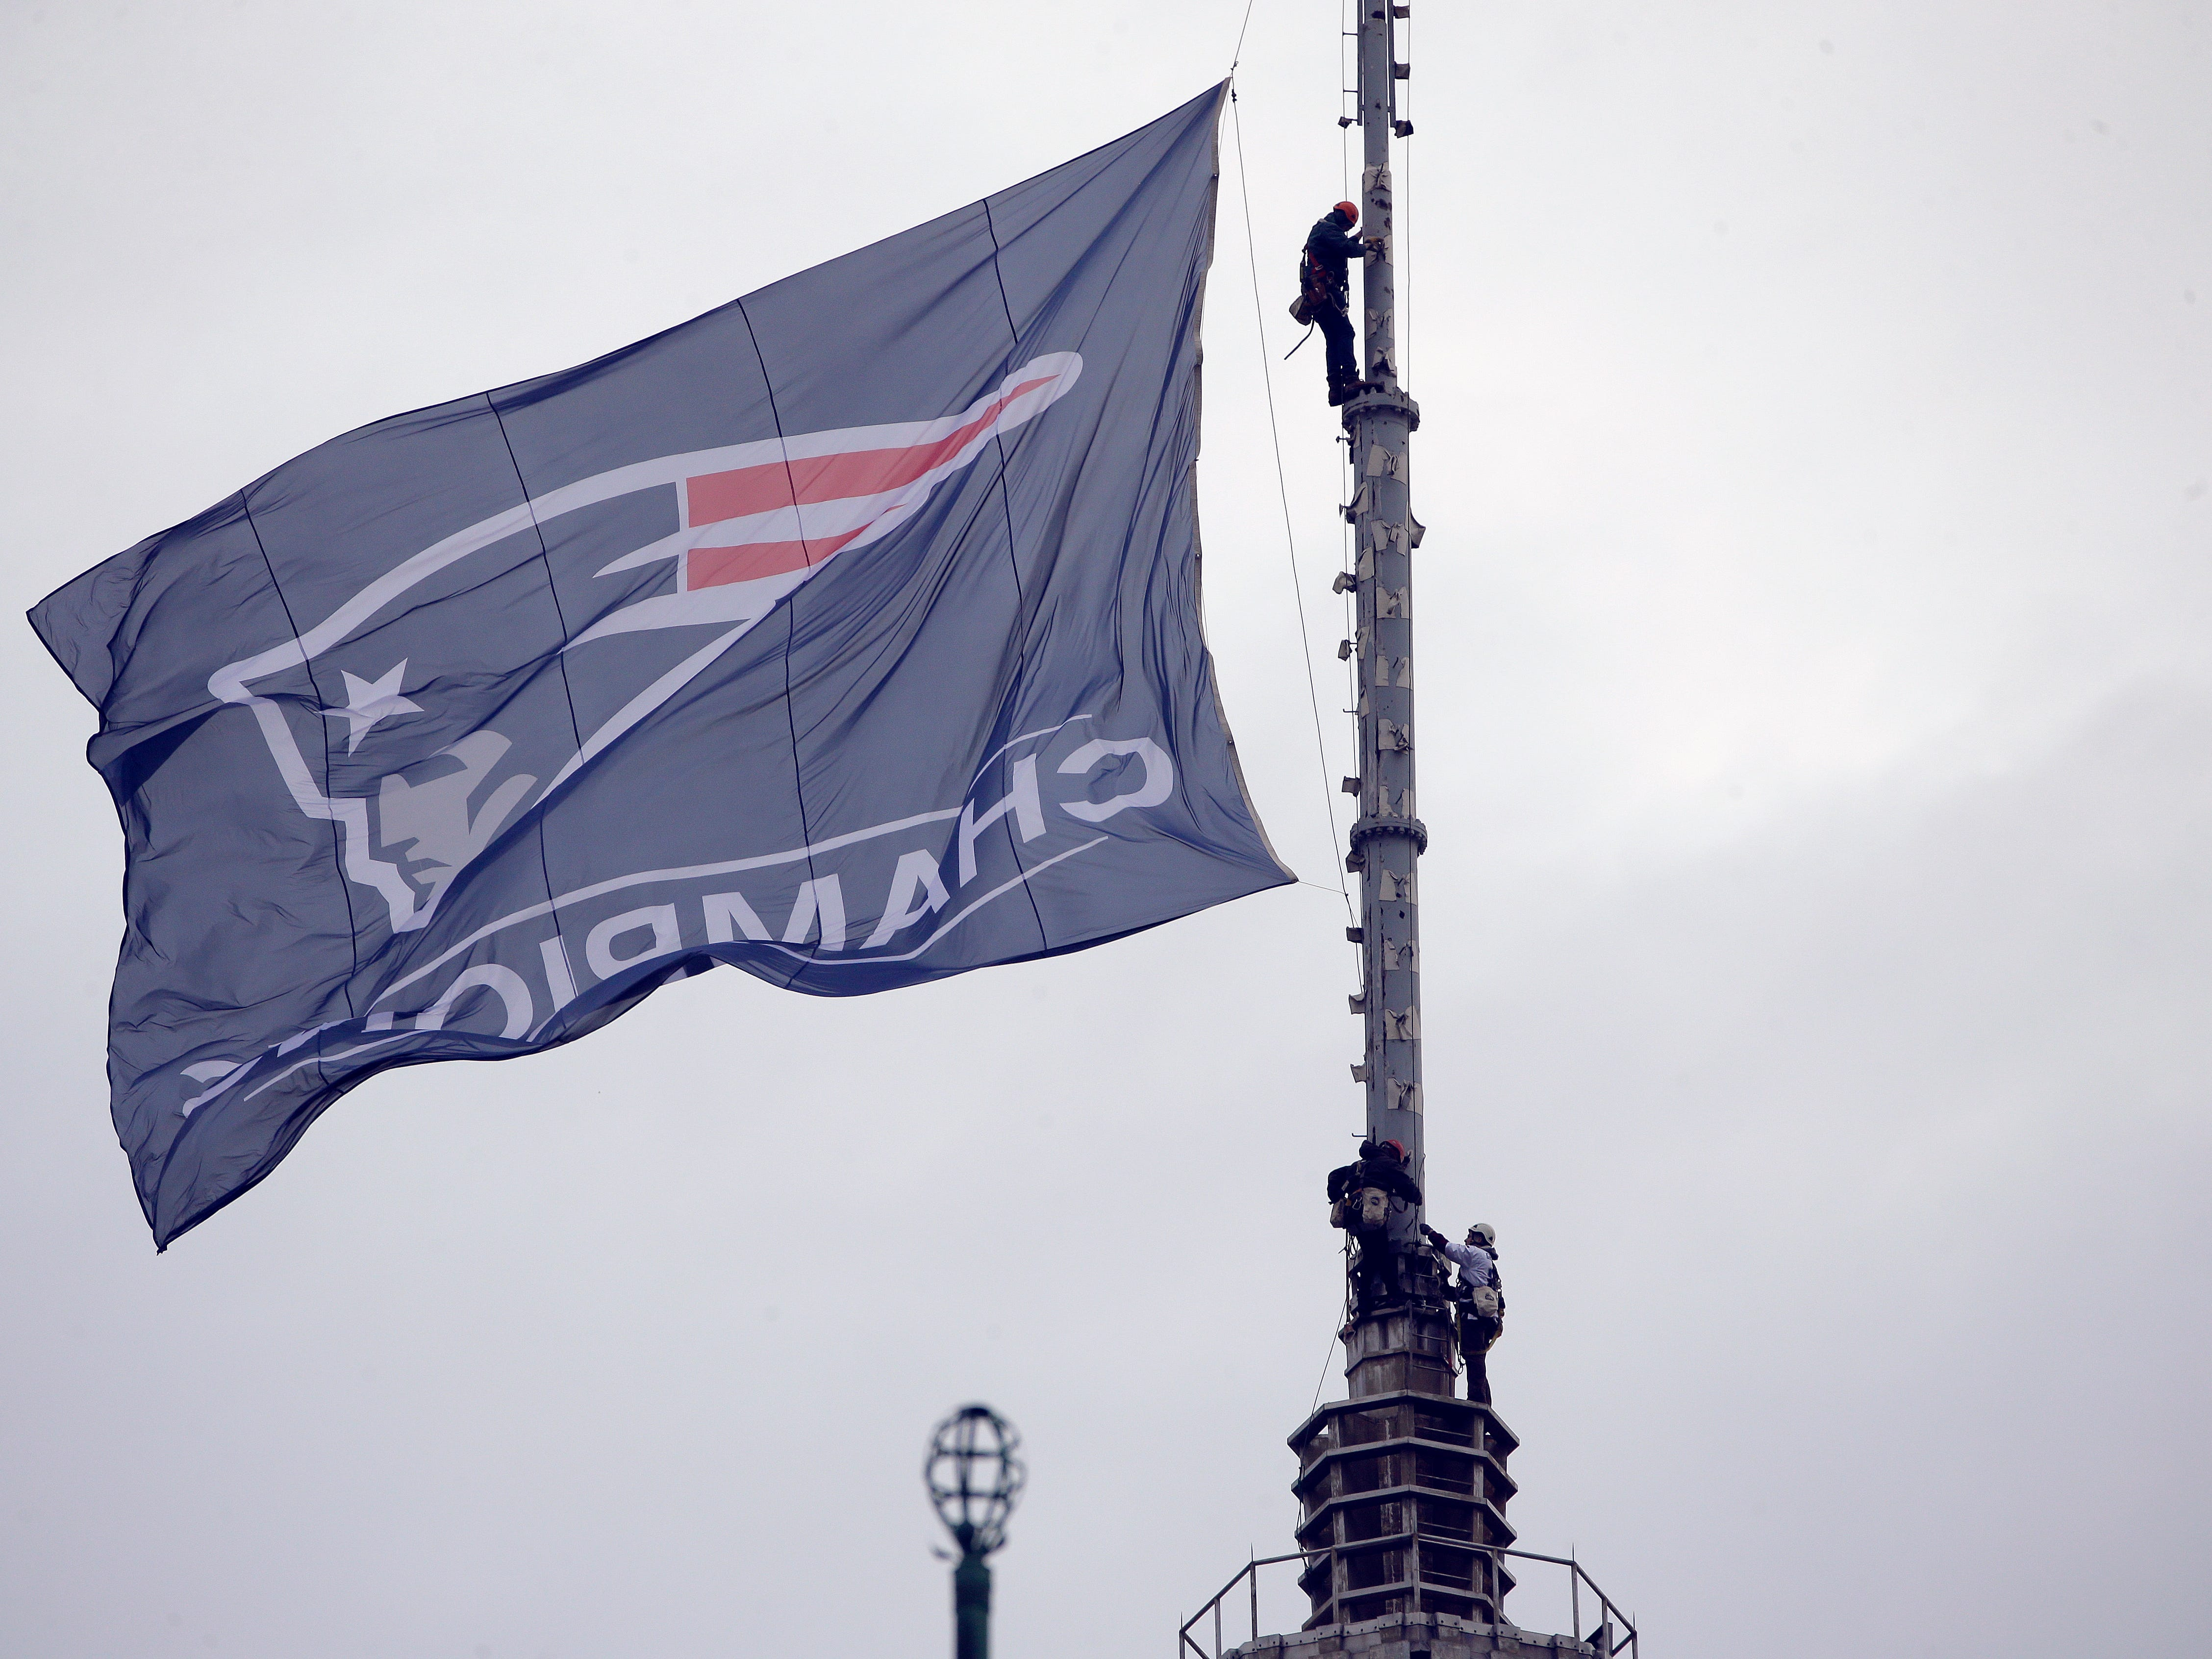 Workers secure a New England Patriots banner on a pole before the team parades through downtown Boston to celebrate their win over the Los Angeles Rams in Sunday's NFL Super Bowl 53 football game in Atlanta. (AP Photo/Steven Senne)